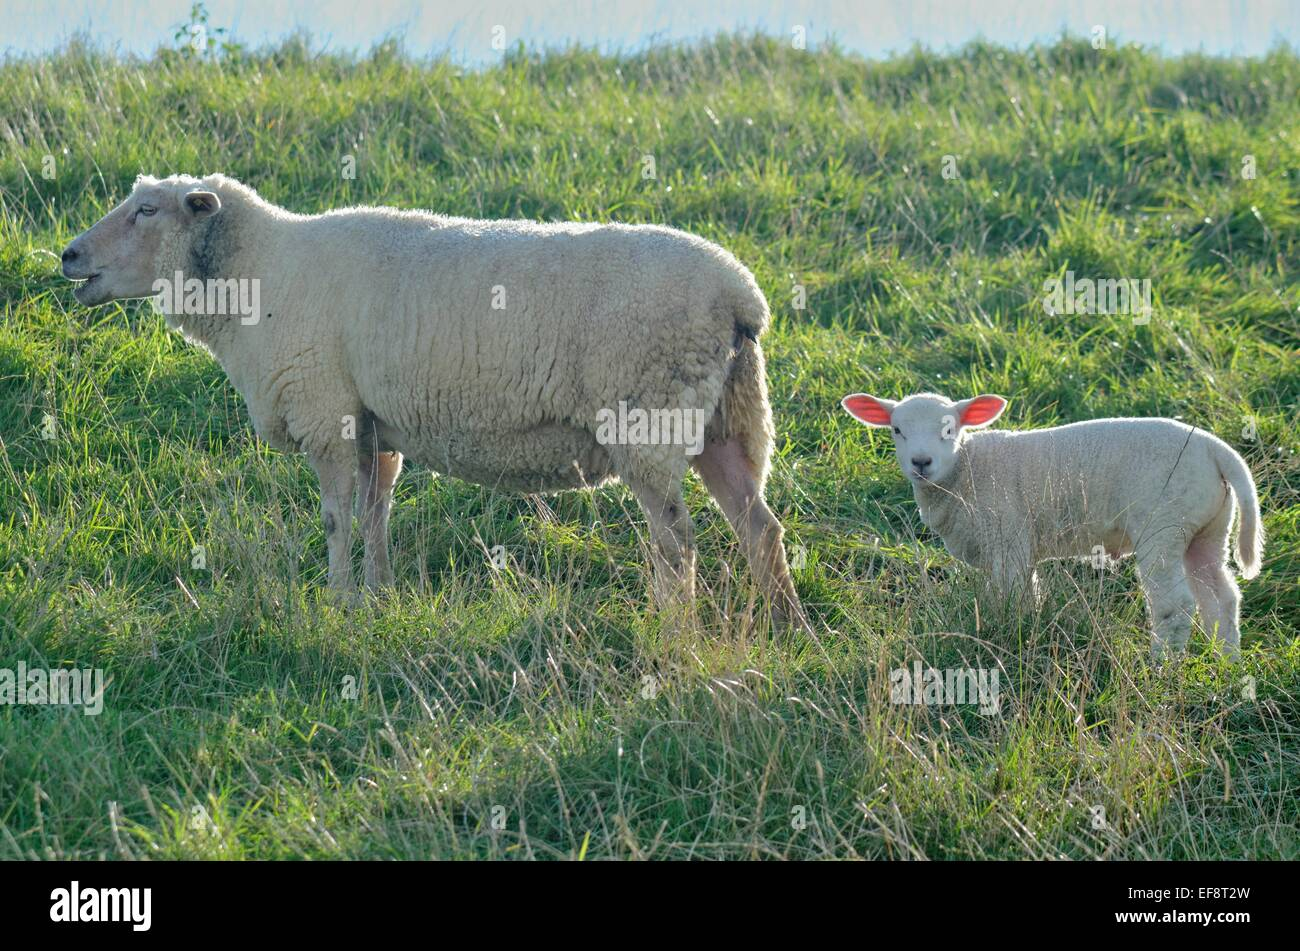 Germany, Oldersum, Ewe with lamb grazing - Stock Image